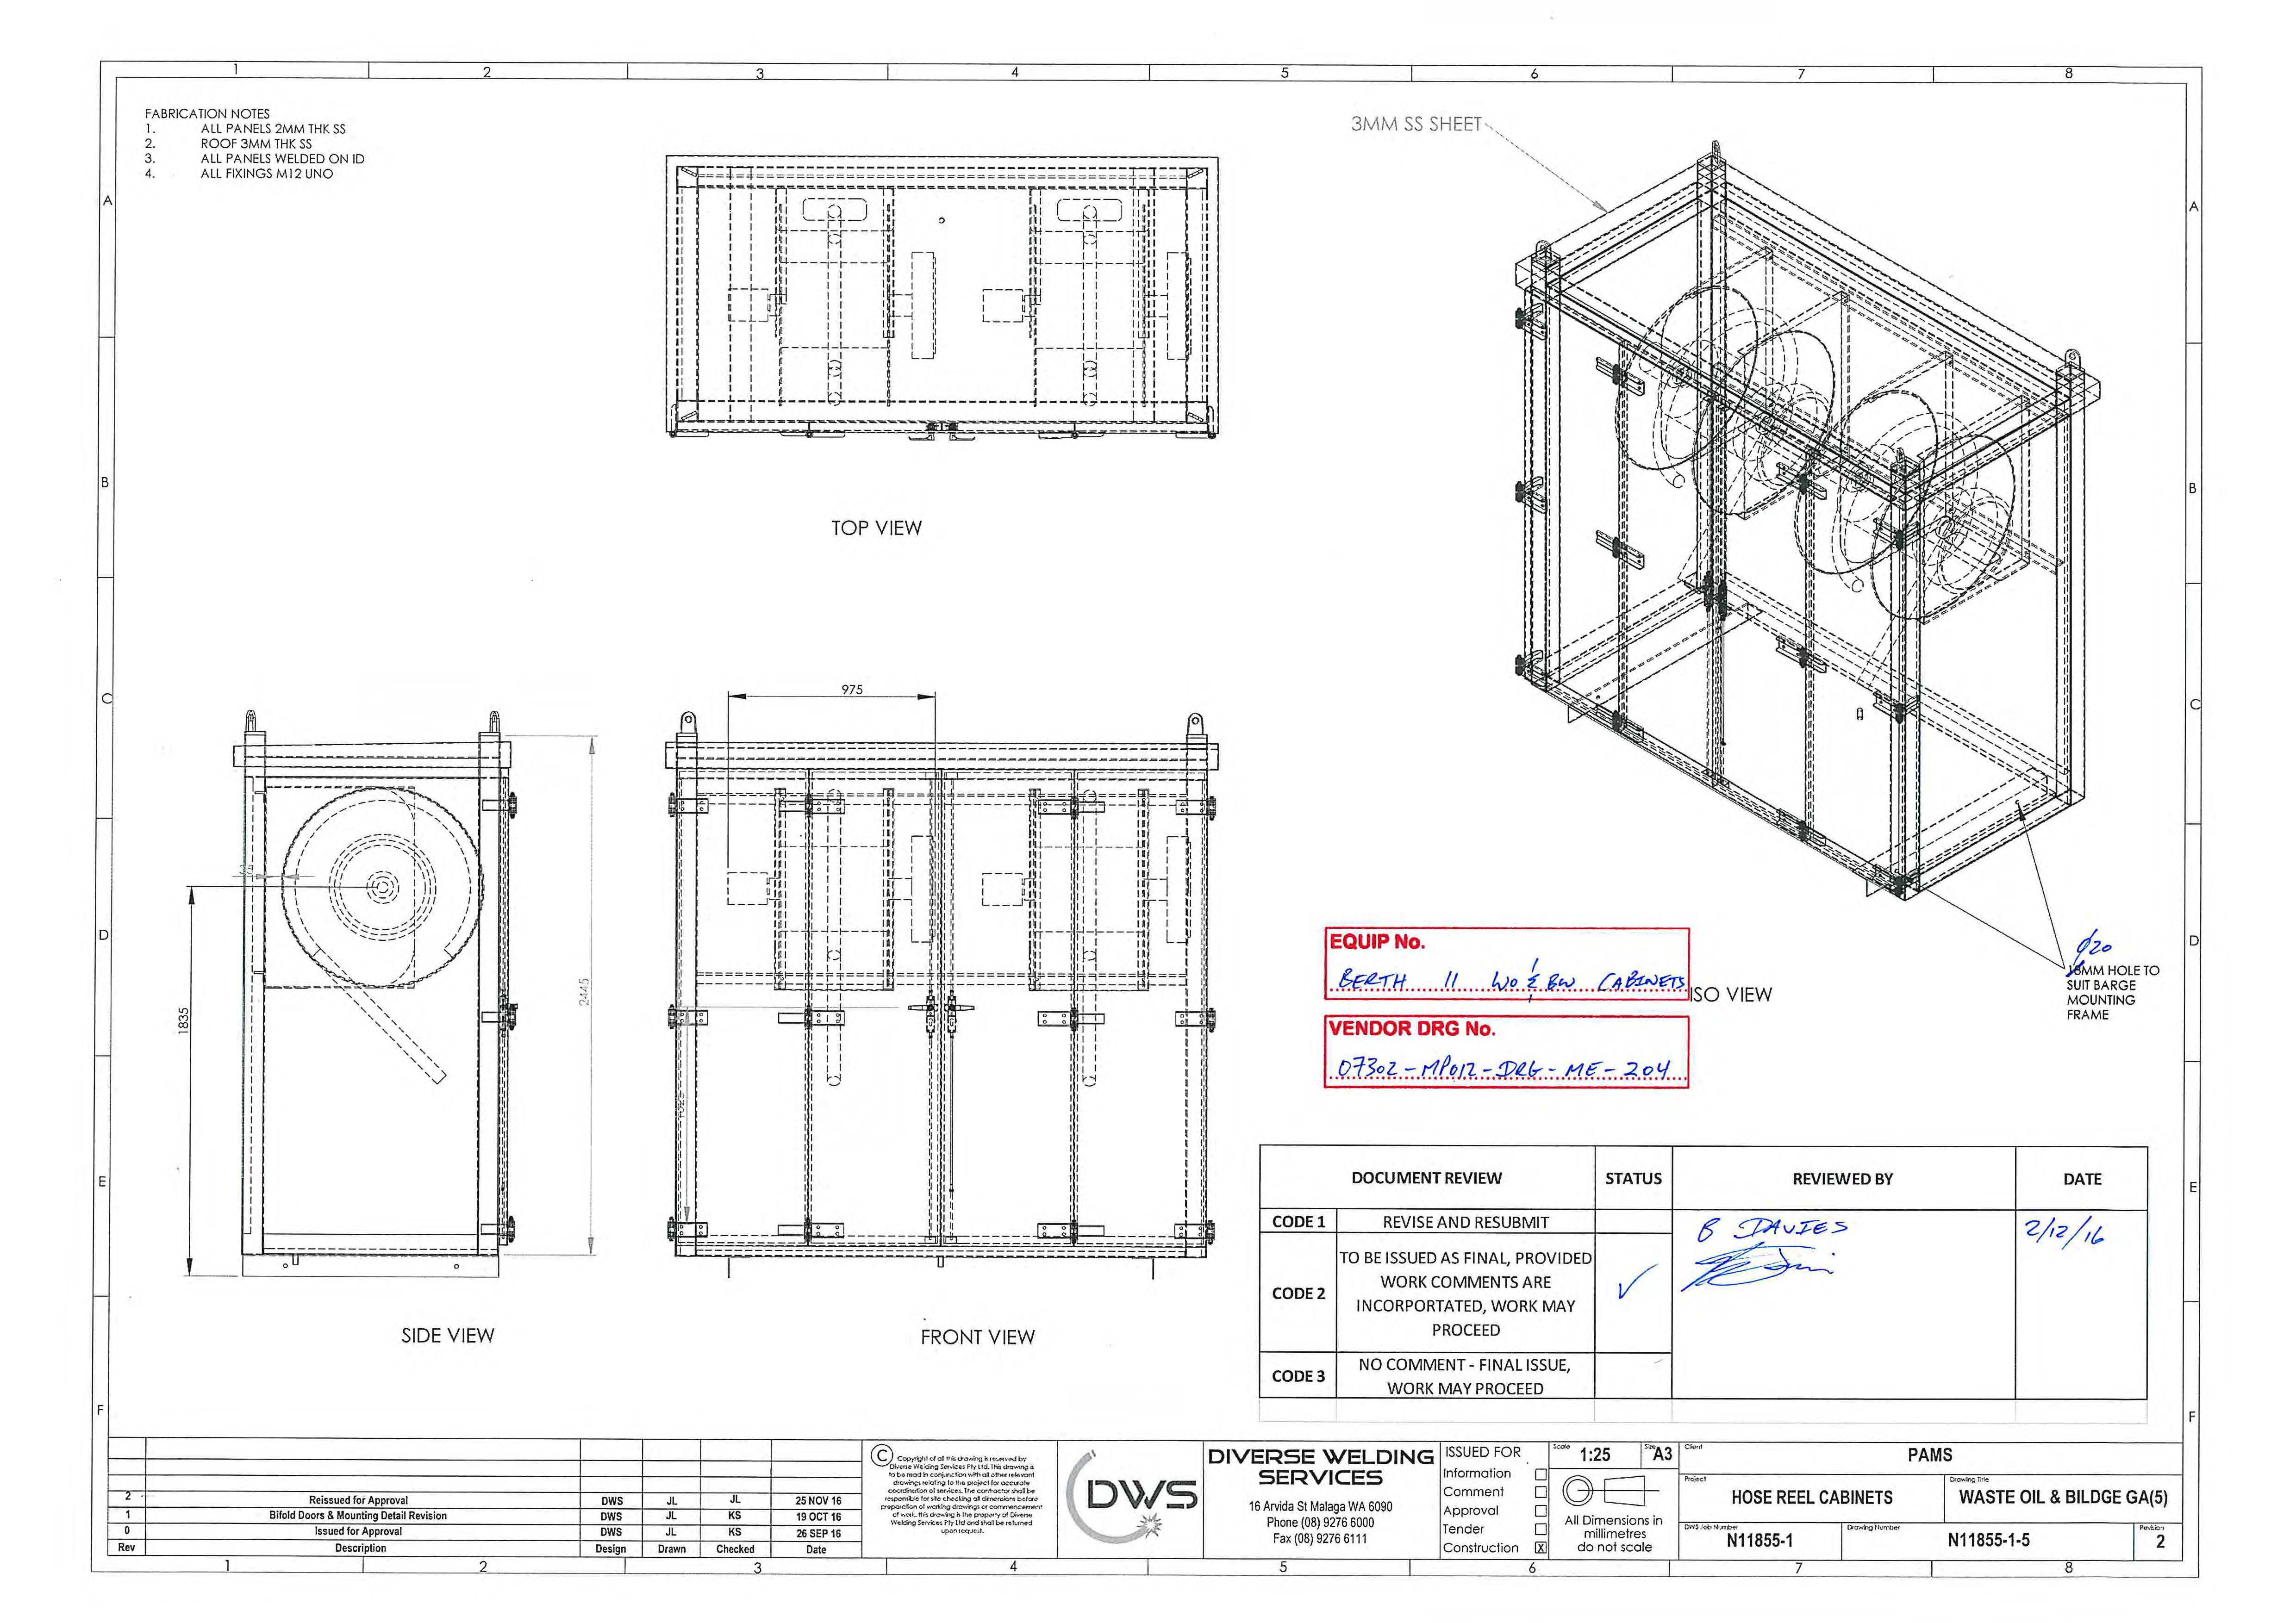 Waste Oil and Bilge Water Cabinet Drawing